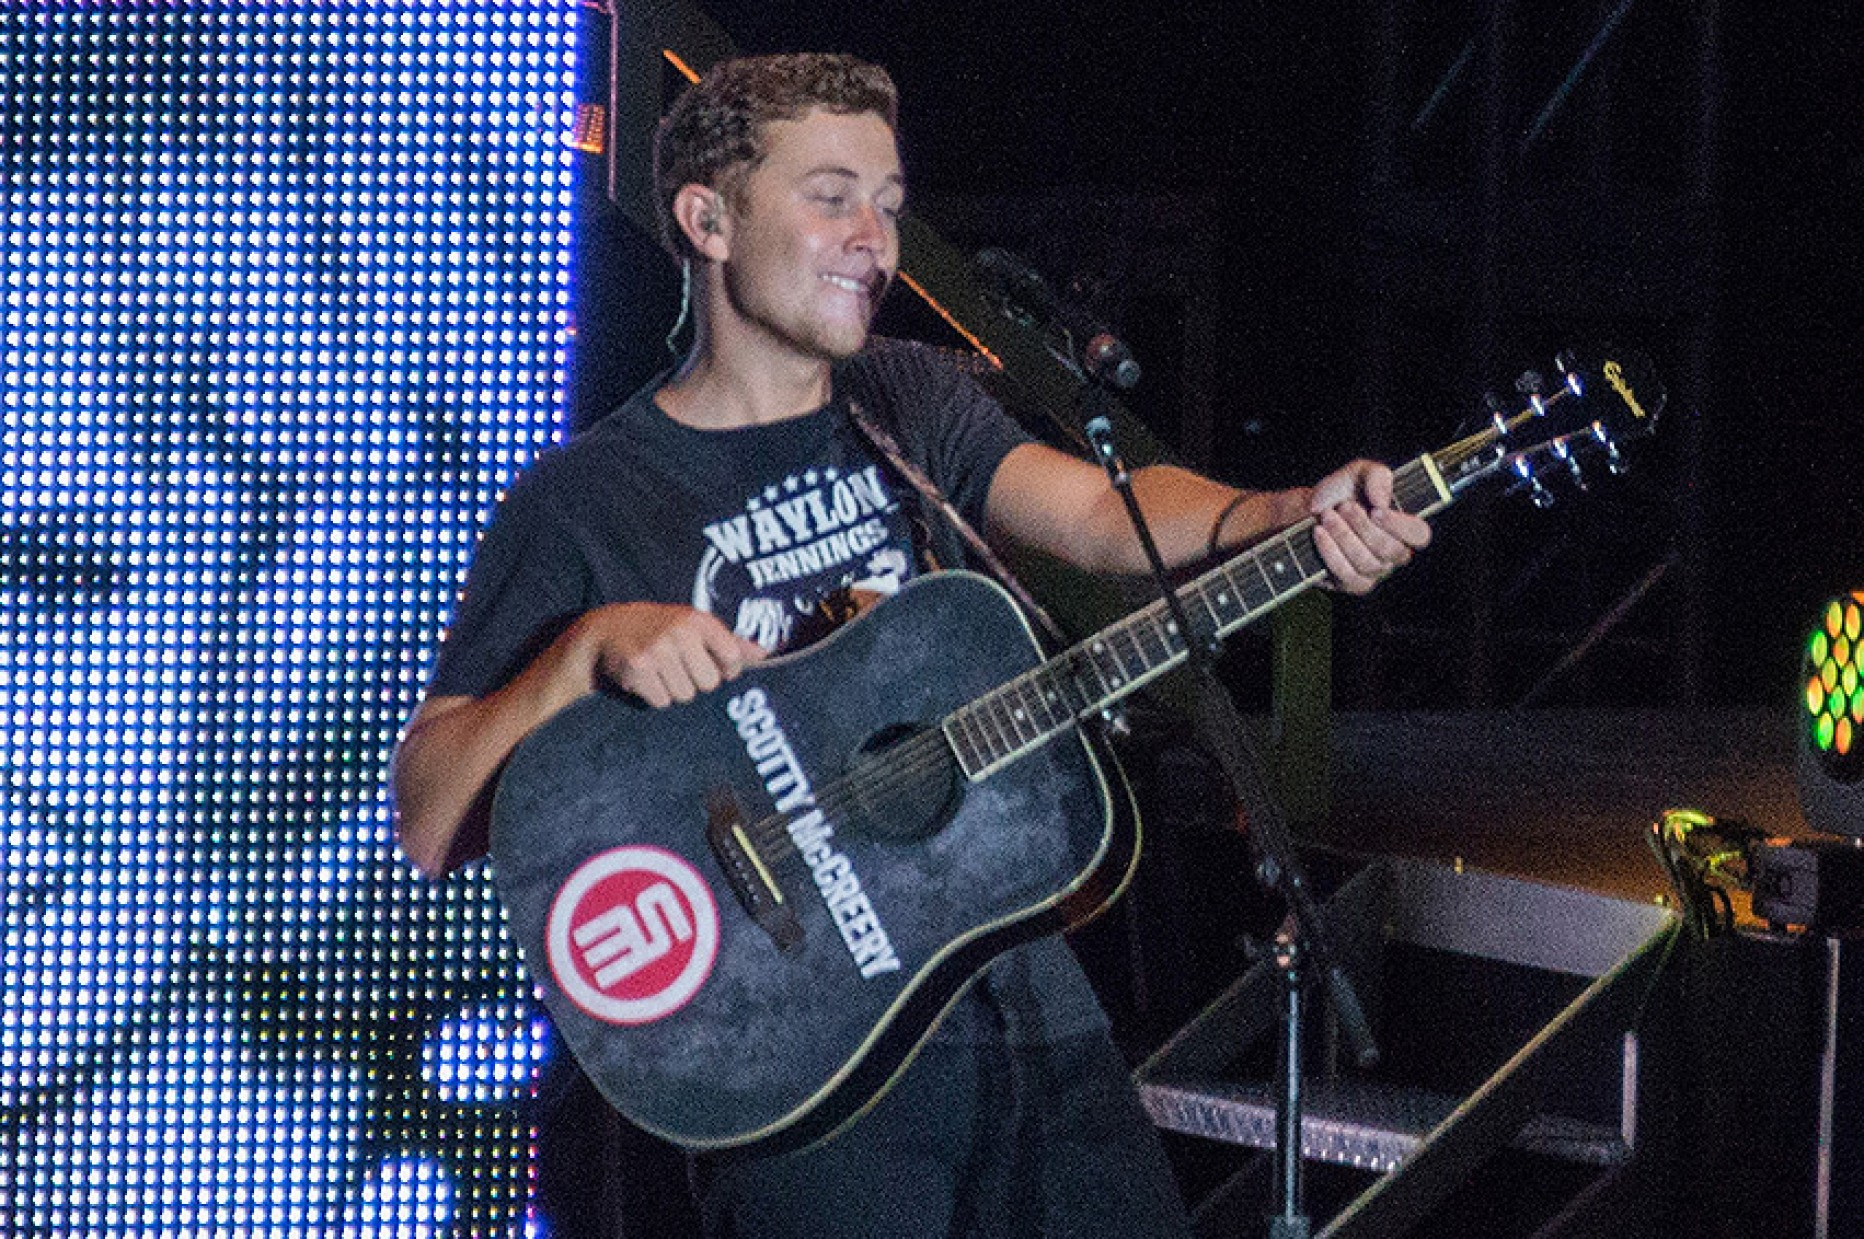 Concert Review: Scotty McCreery at Allegany Co Fair in Cumberland, MD